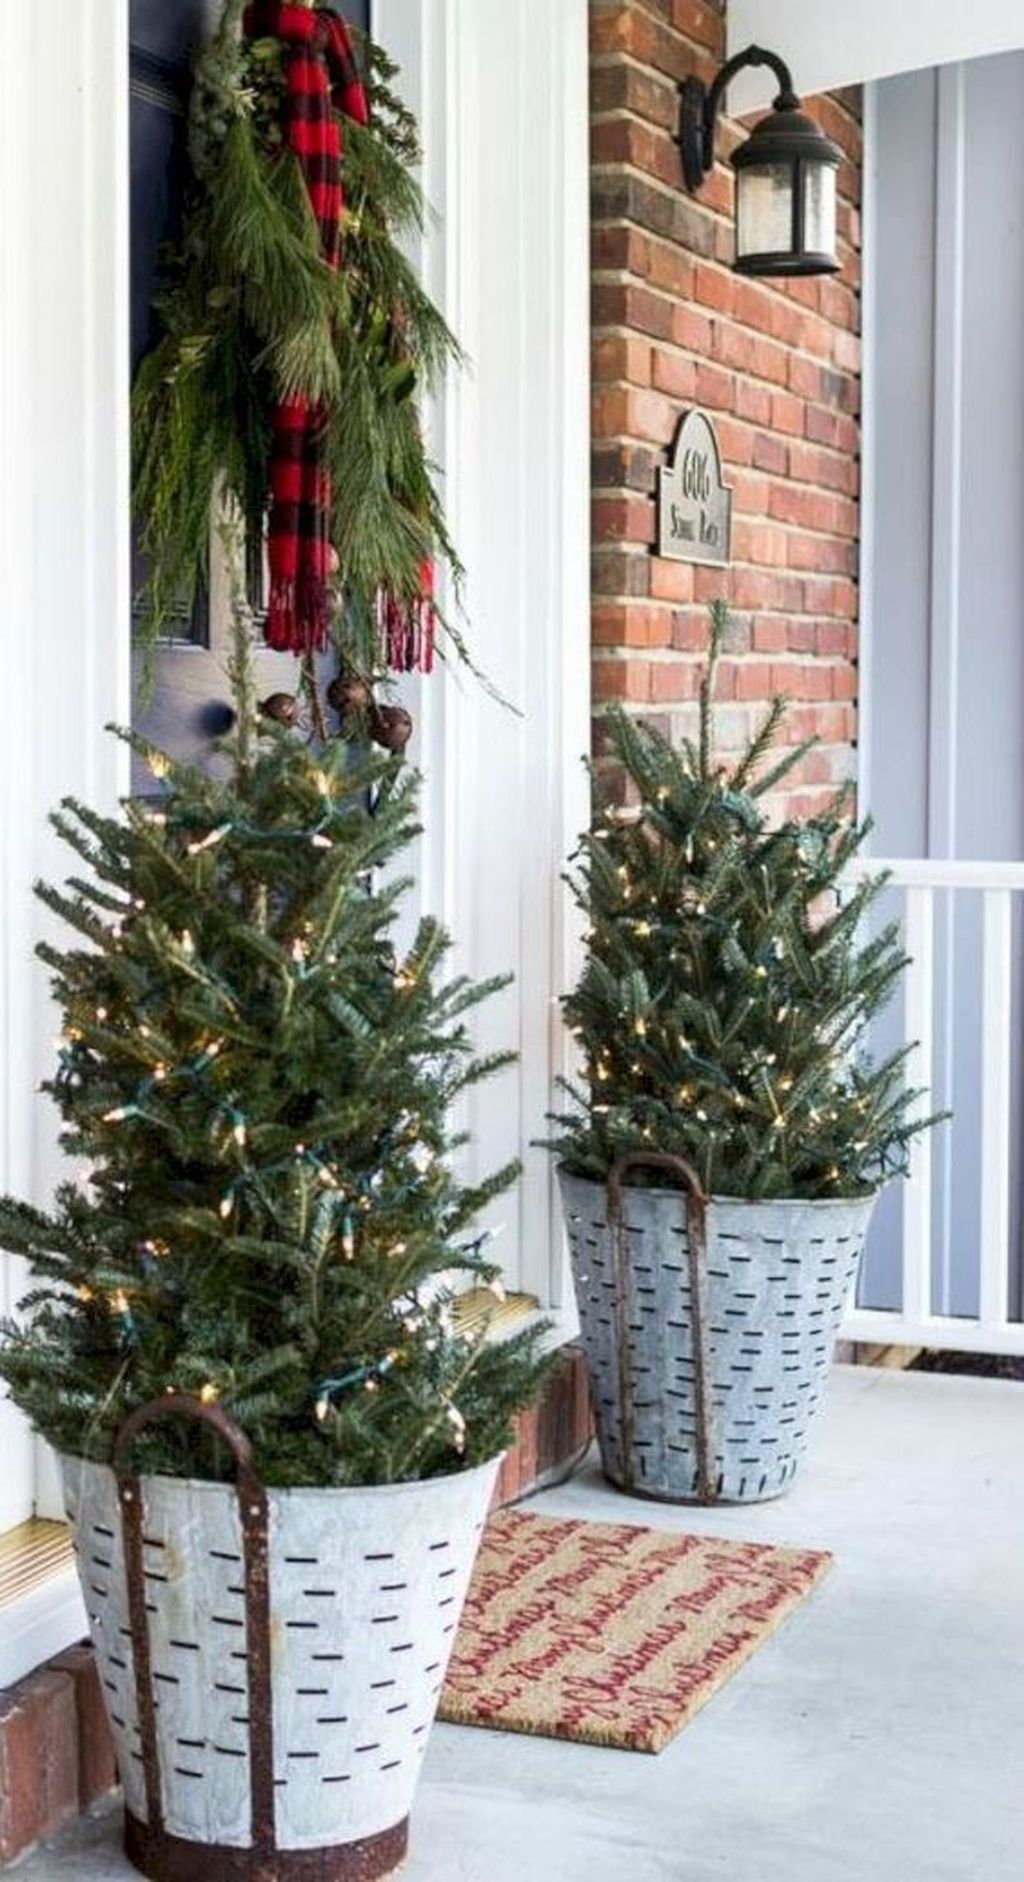 50 Gorgeous Winter Front Porch Design Ideas Sweetyhomee Frugal Christmas Outdoor Christmas Decorations Christmas Diy